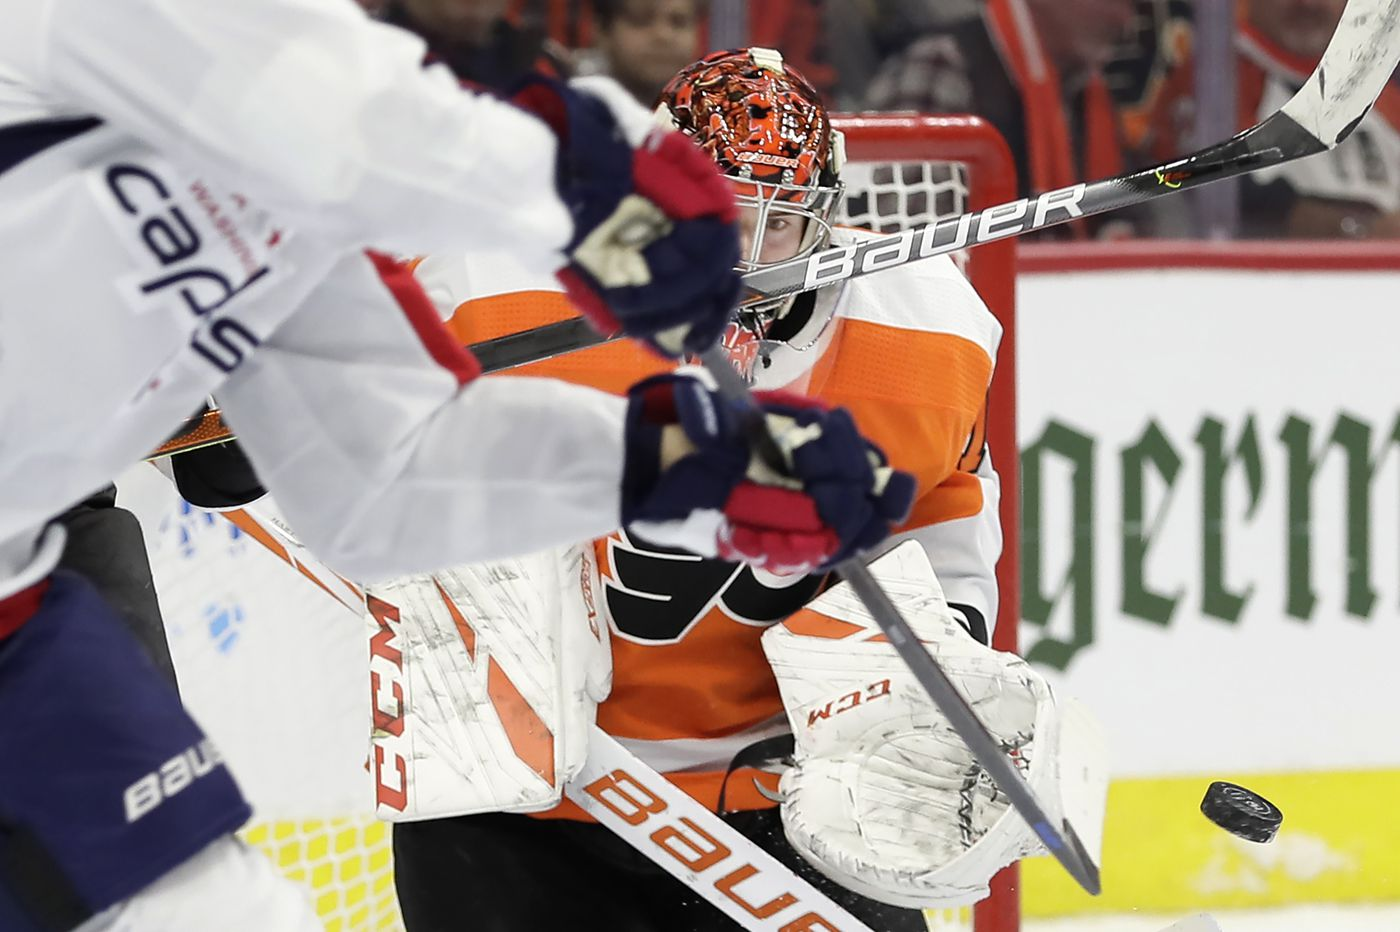 Flyers won't look past Ottawa, coach Alain Vigneault says, and sizzling Carter Hart will get another start in goal